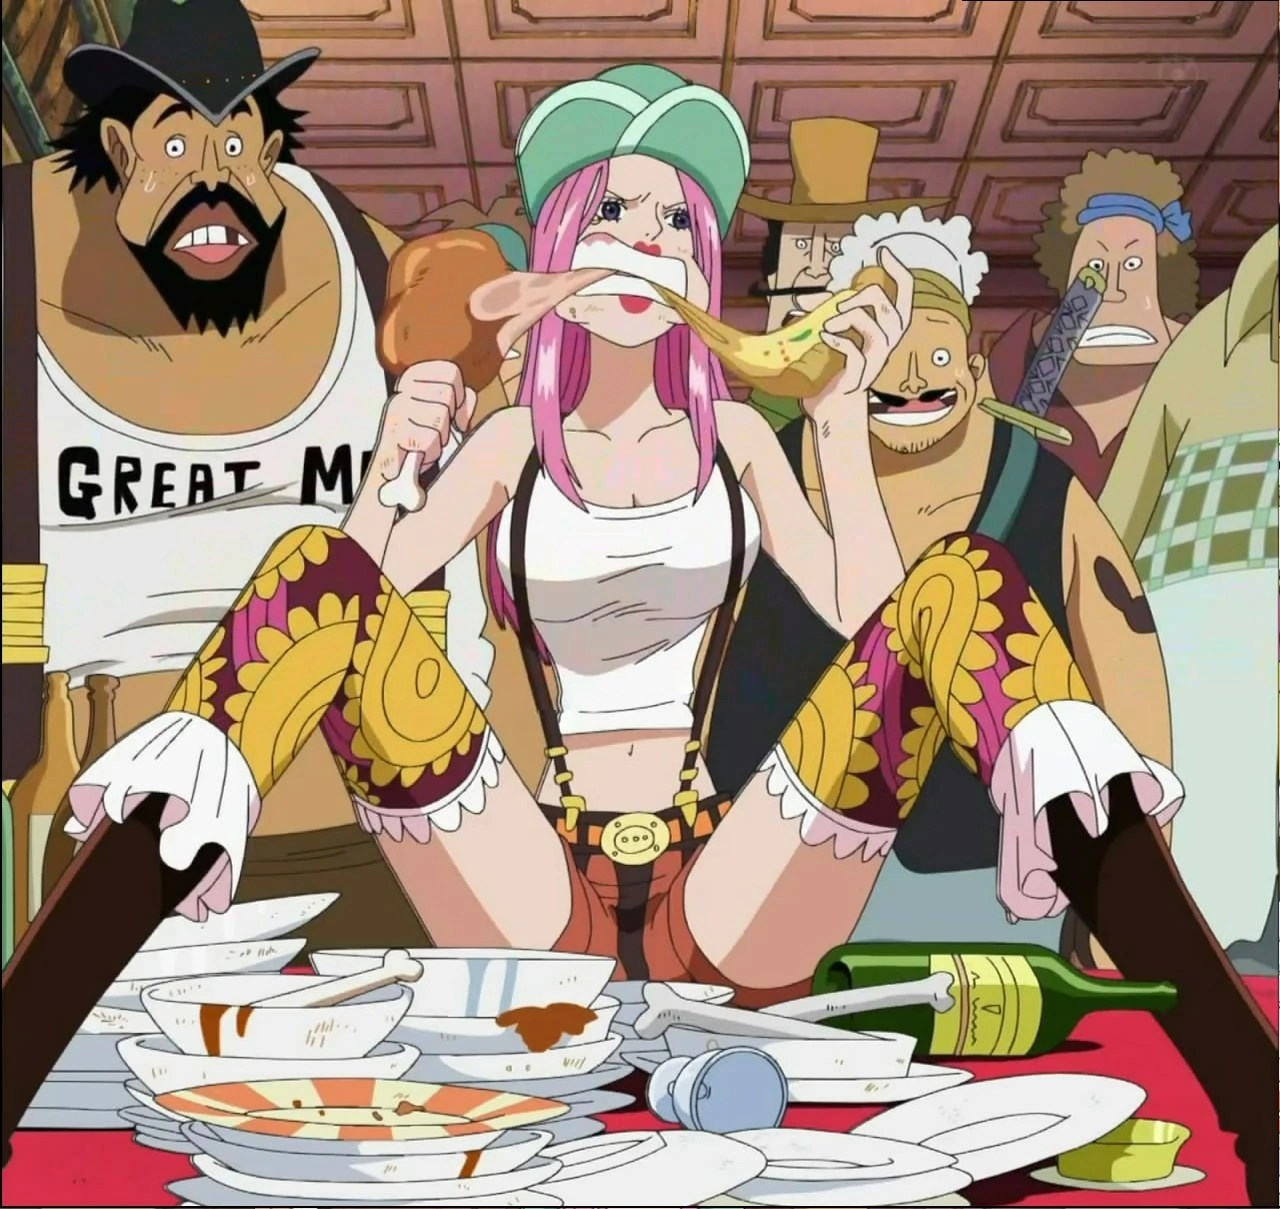 Bonney Pirates The One Piece Wiki Manga Anime